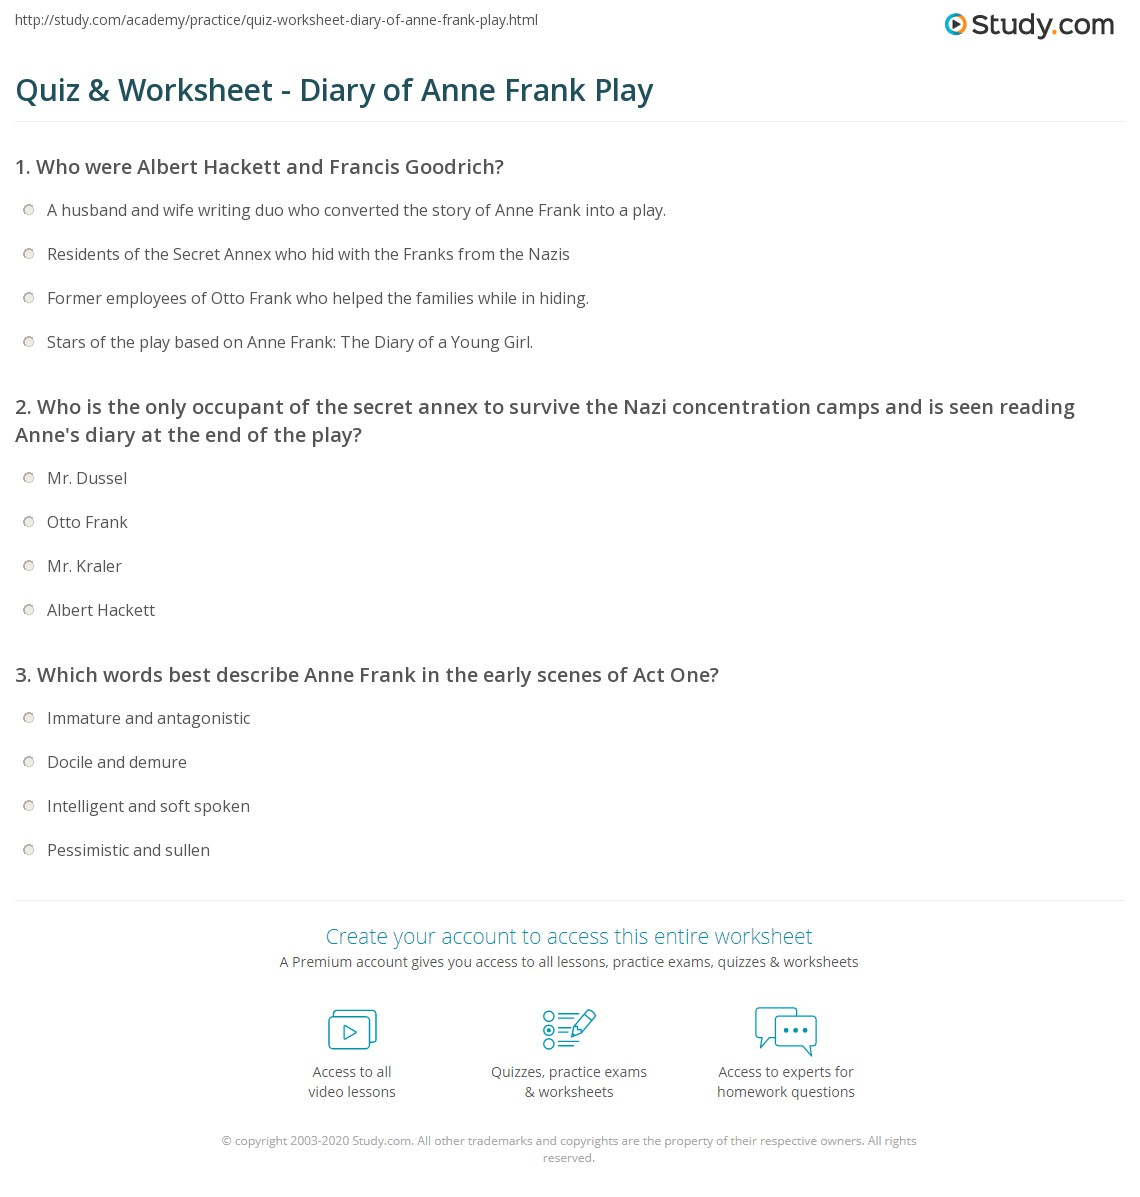 essay about anne frank diary anne frank homework help confucianism  quiz worksheet diary of anne frank play com print diary of anne frank by albert hackett